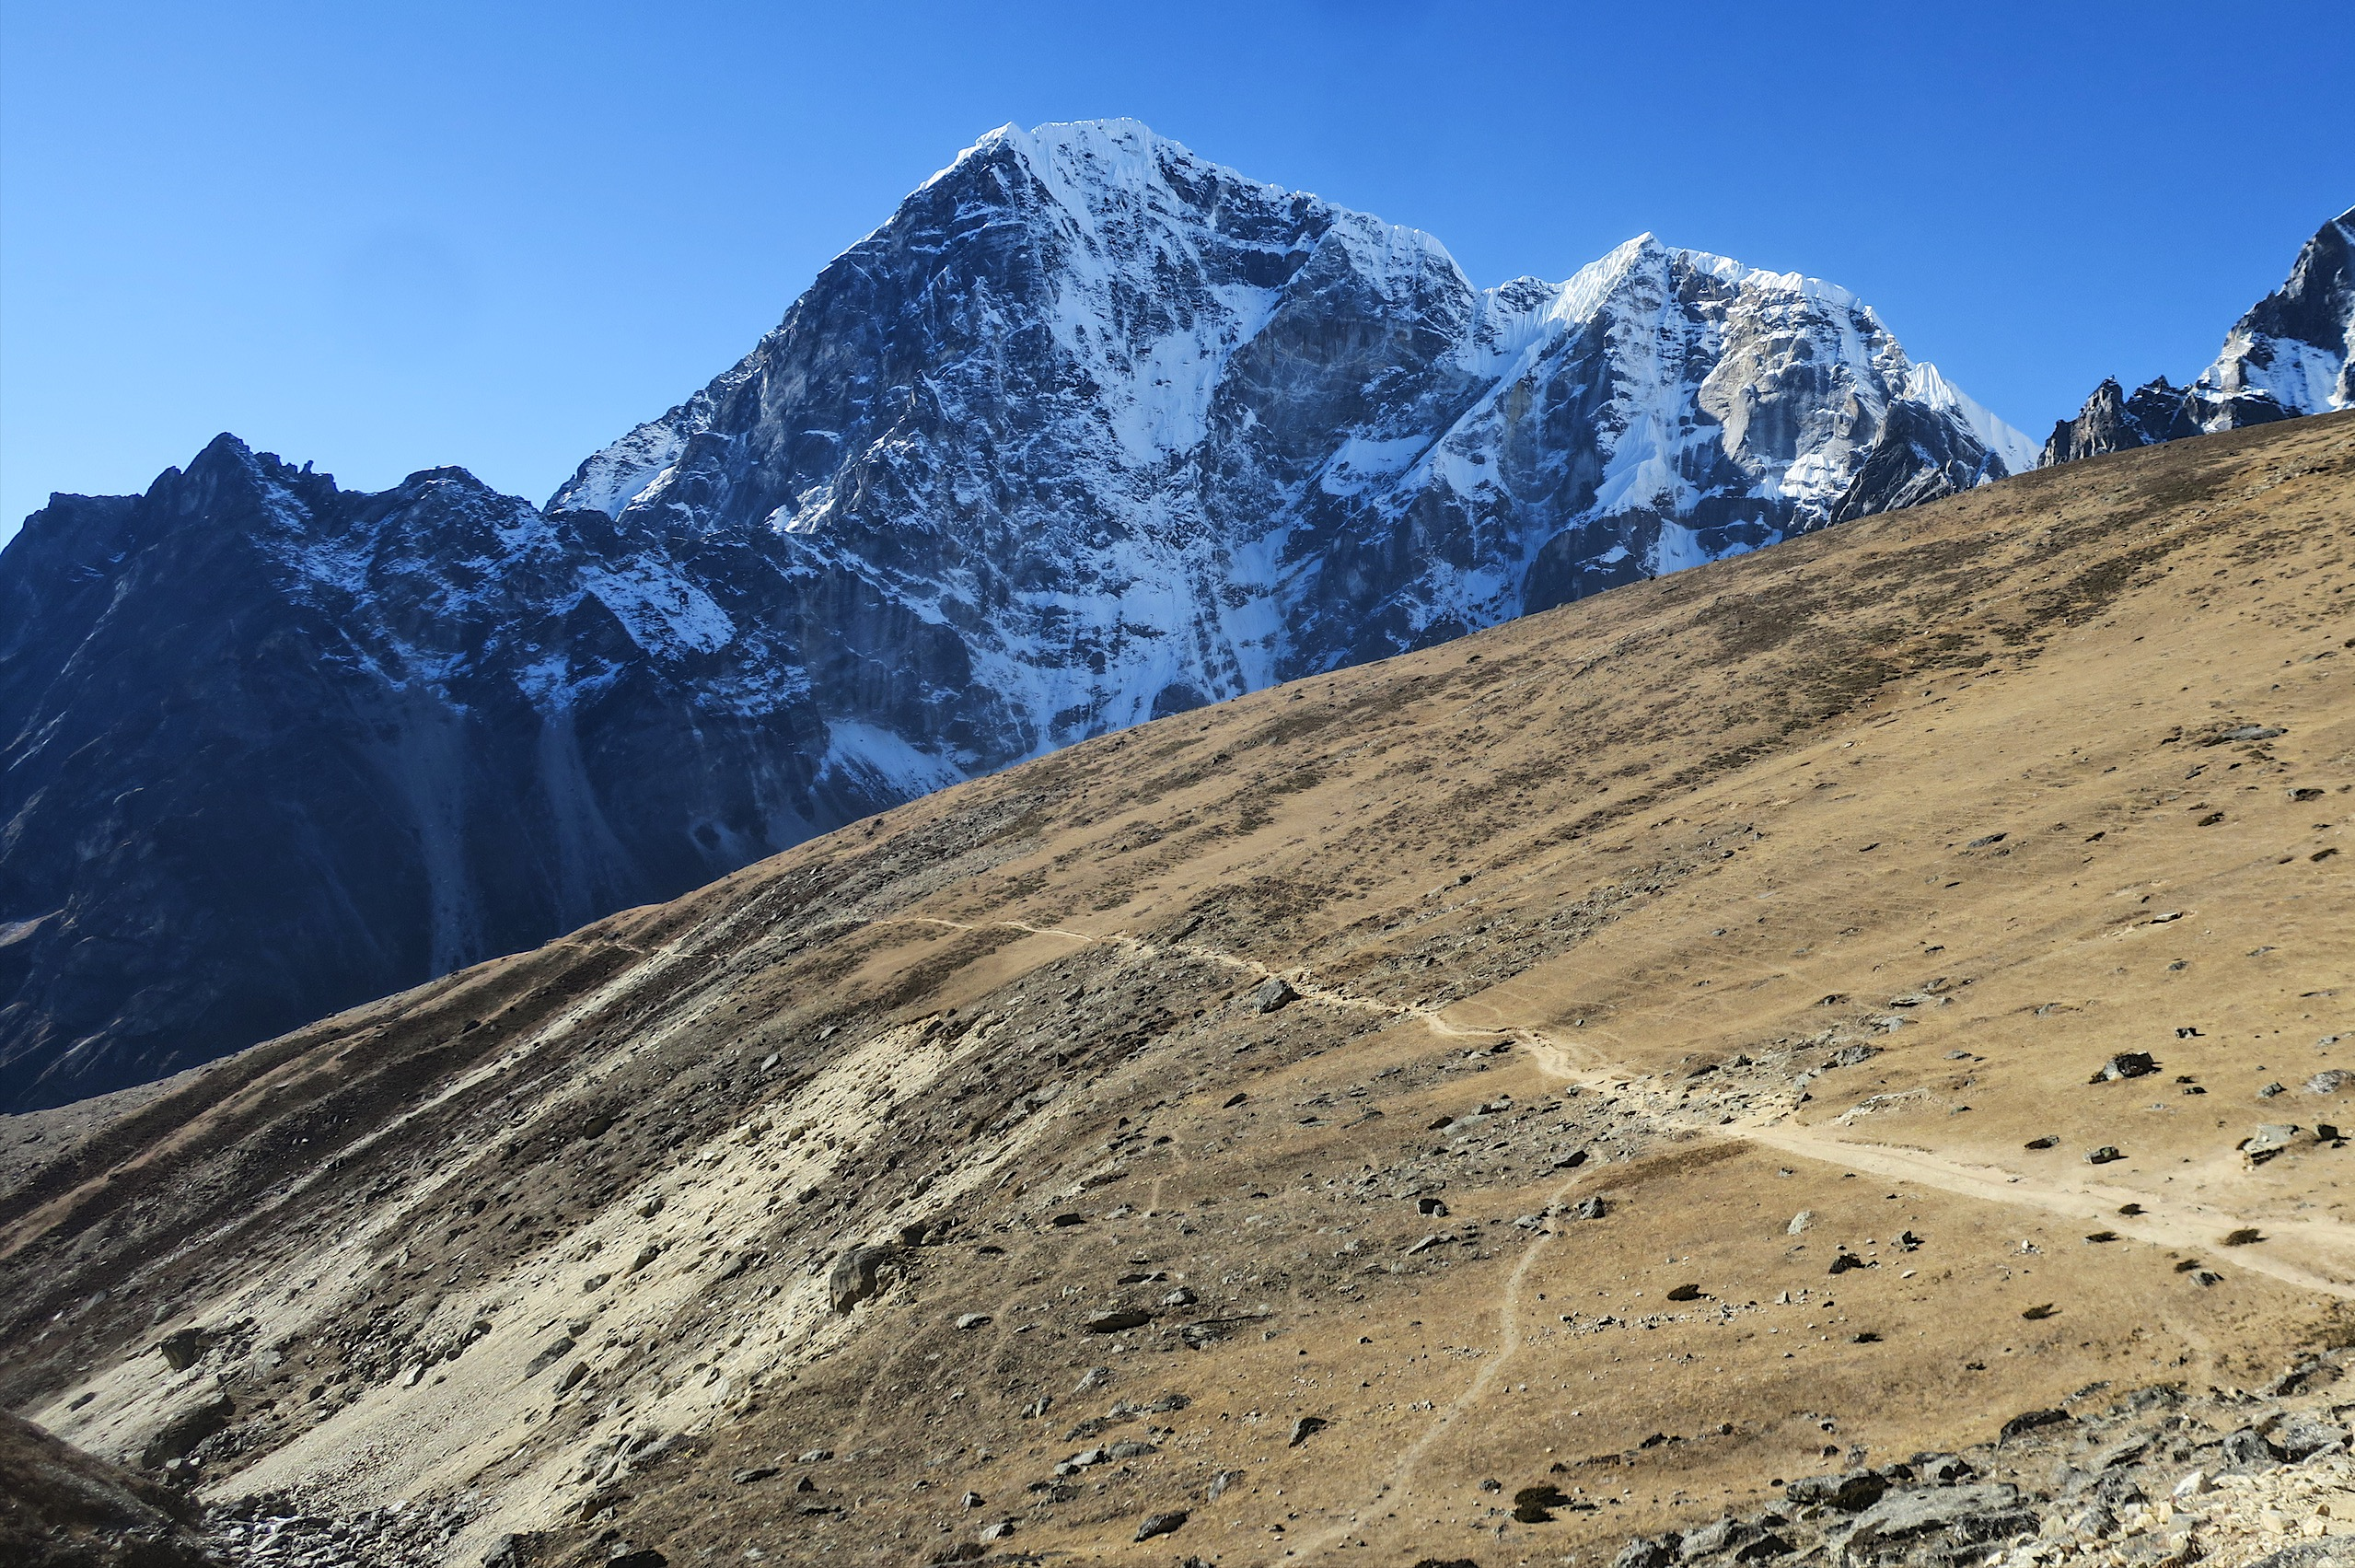 The Khumbu region consistently has some of the most incredible and scenic trails I've ever hiked on.